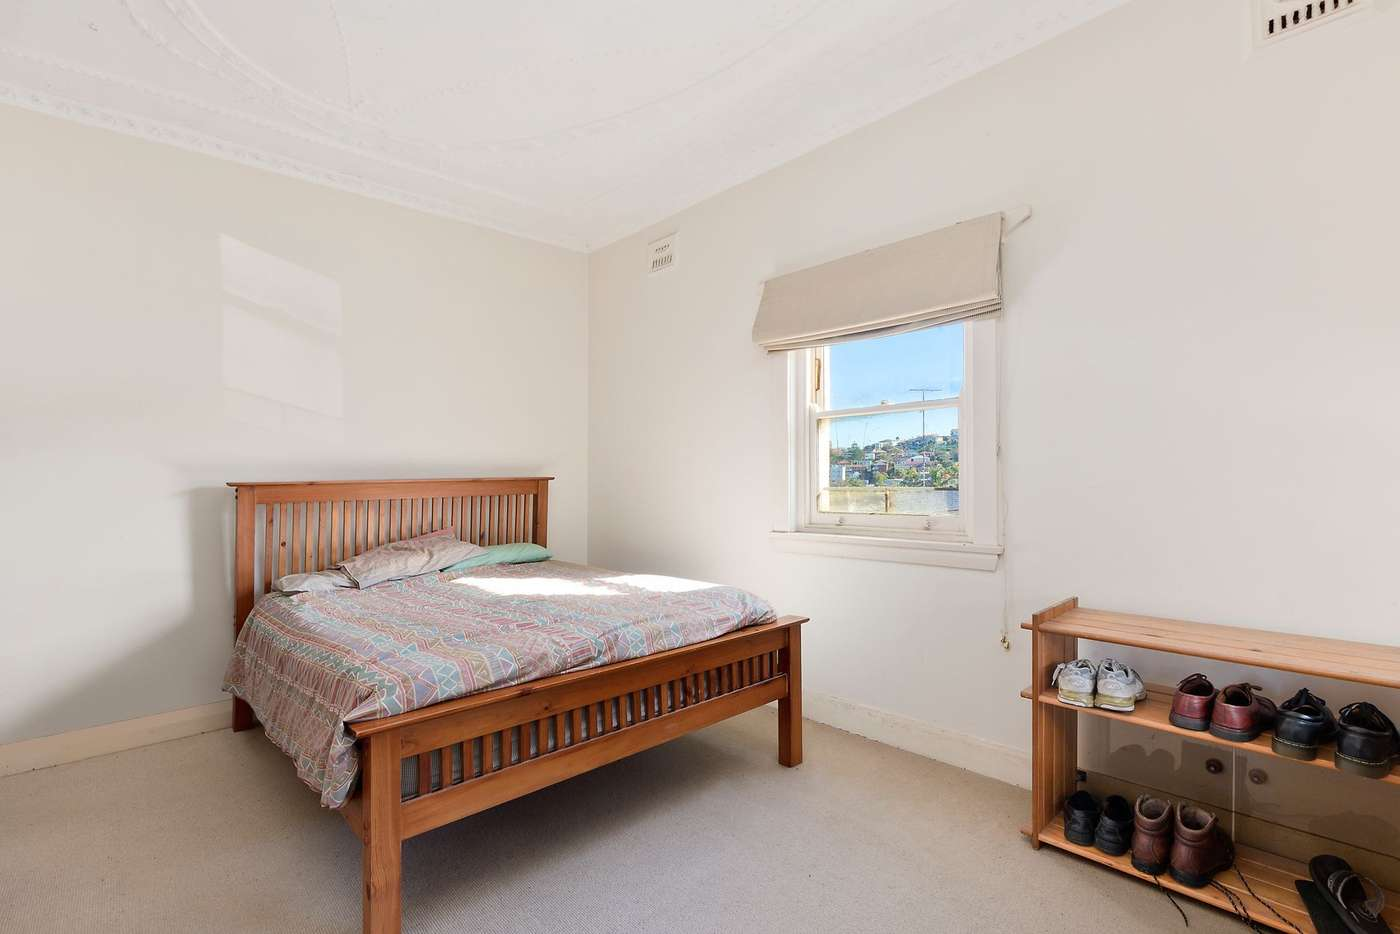 Sixth view of Homely house listing, 417 Maroubra Road, Maroubra NSW 2035